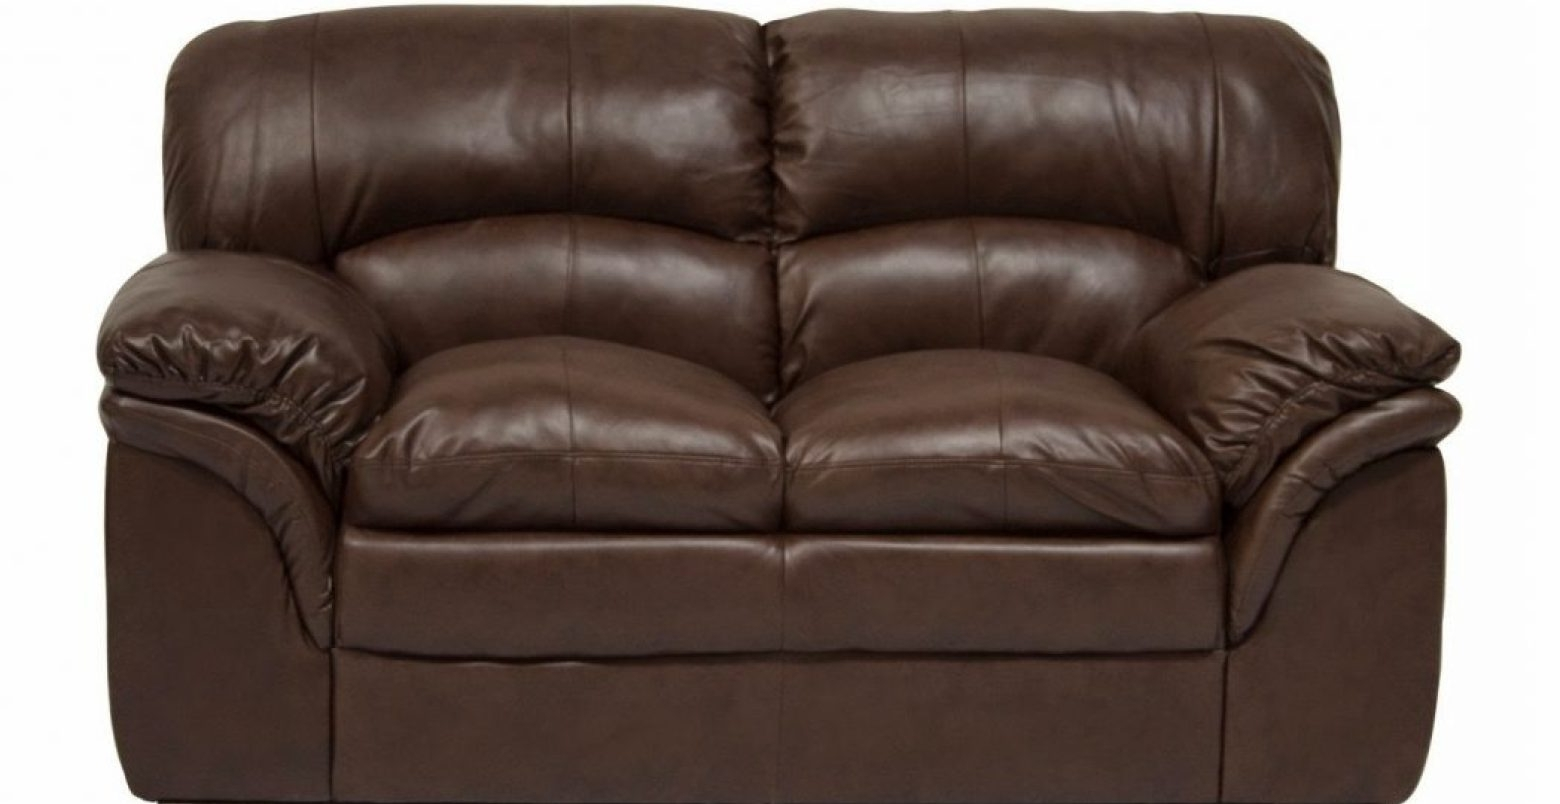 2017 Craigslist Leather Sofas With Leather Sofa Deals Poling Homes Second Hand Black Leather Sofas (View 14 of 15)